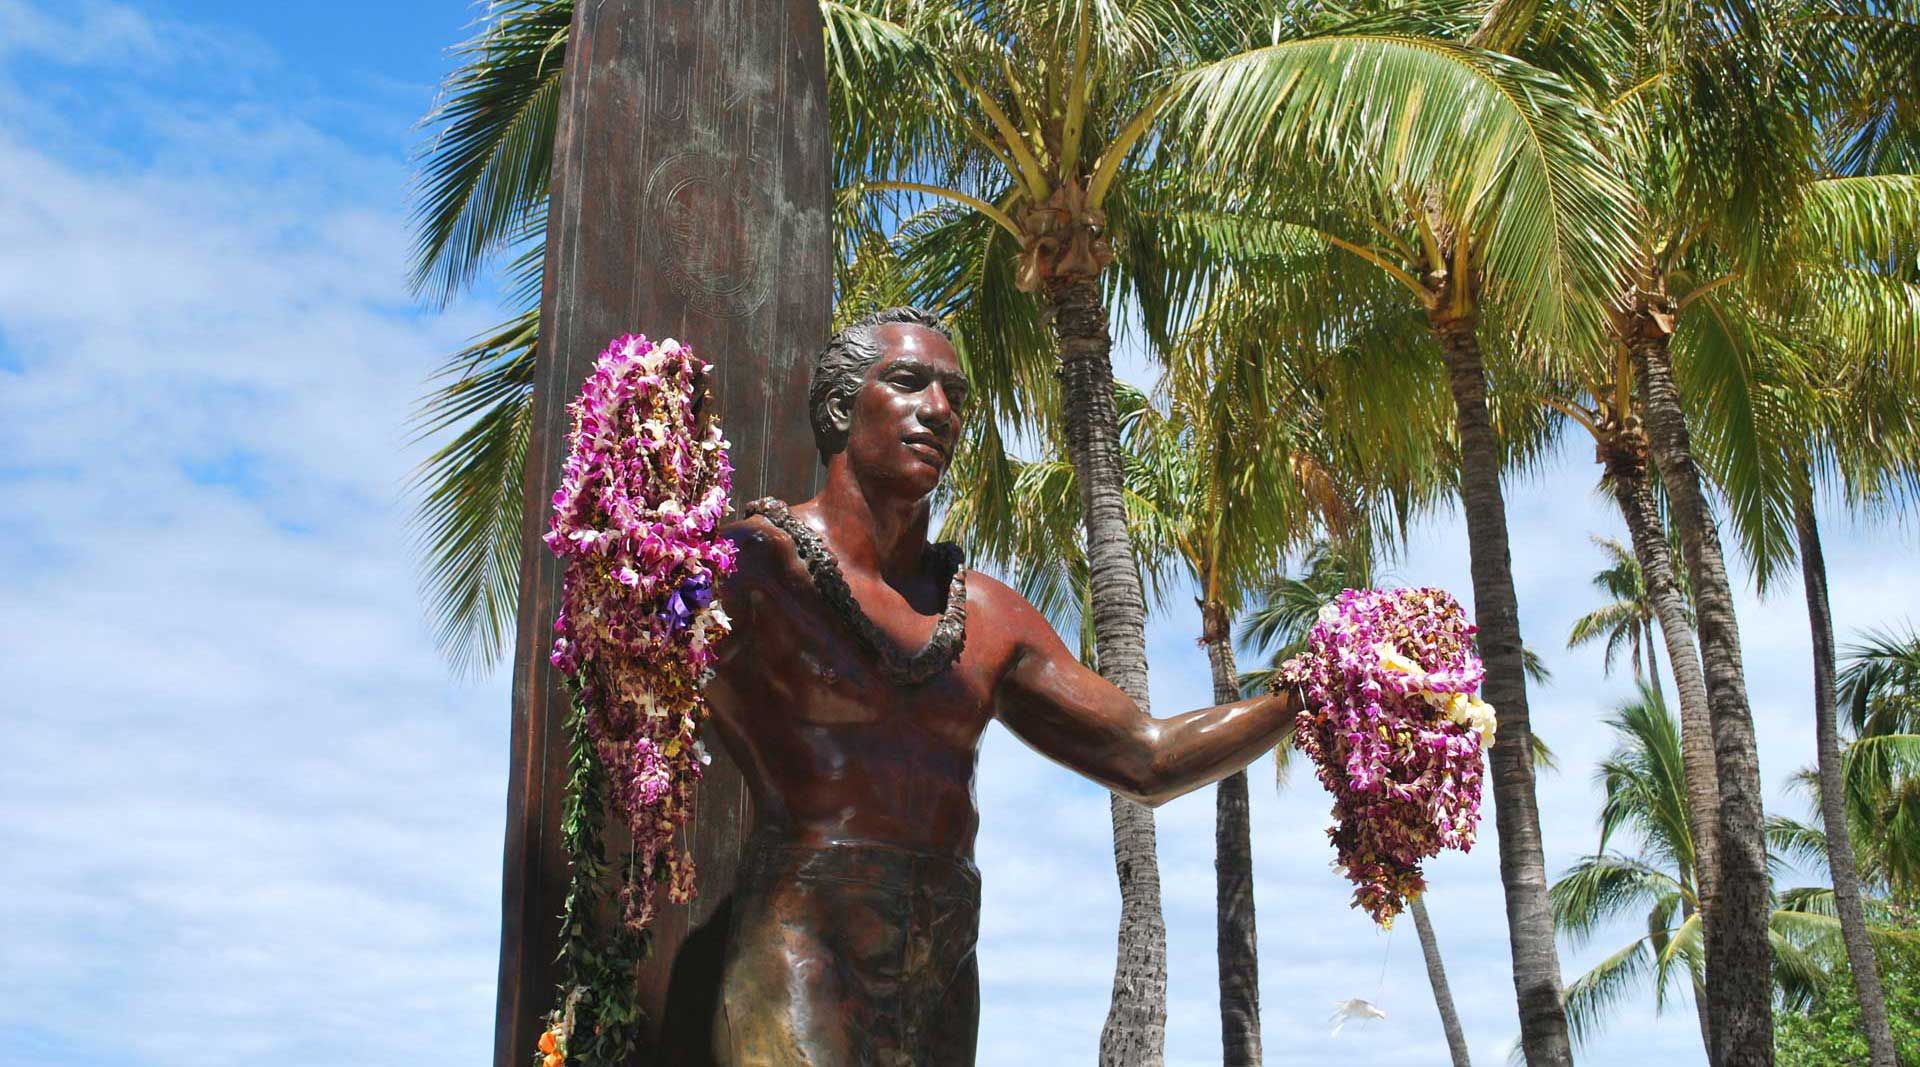 man holding garlands statue near coconut trees